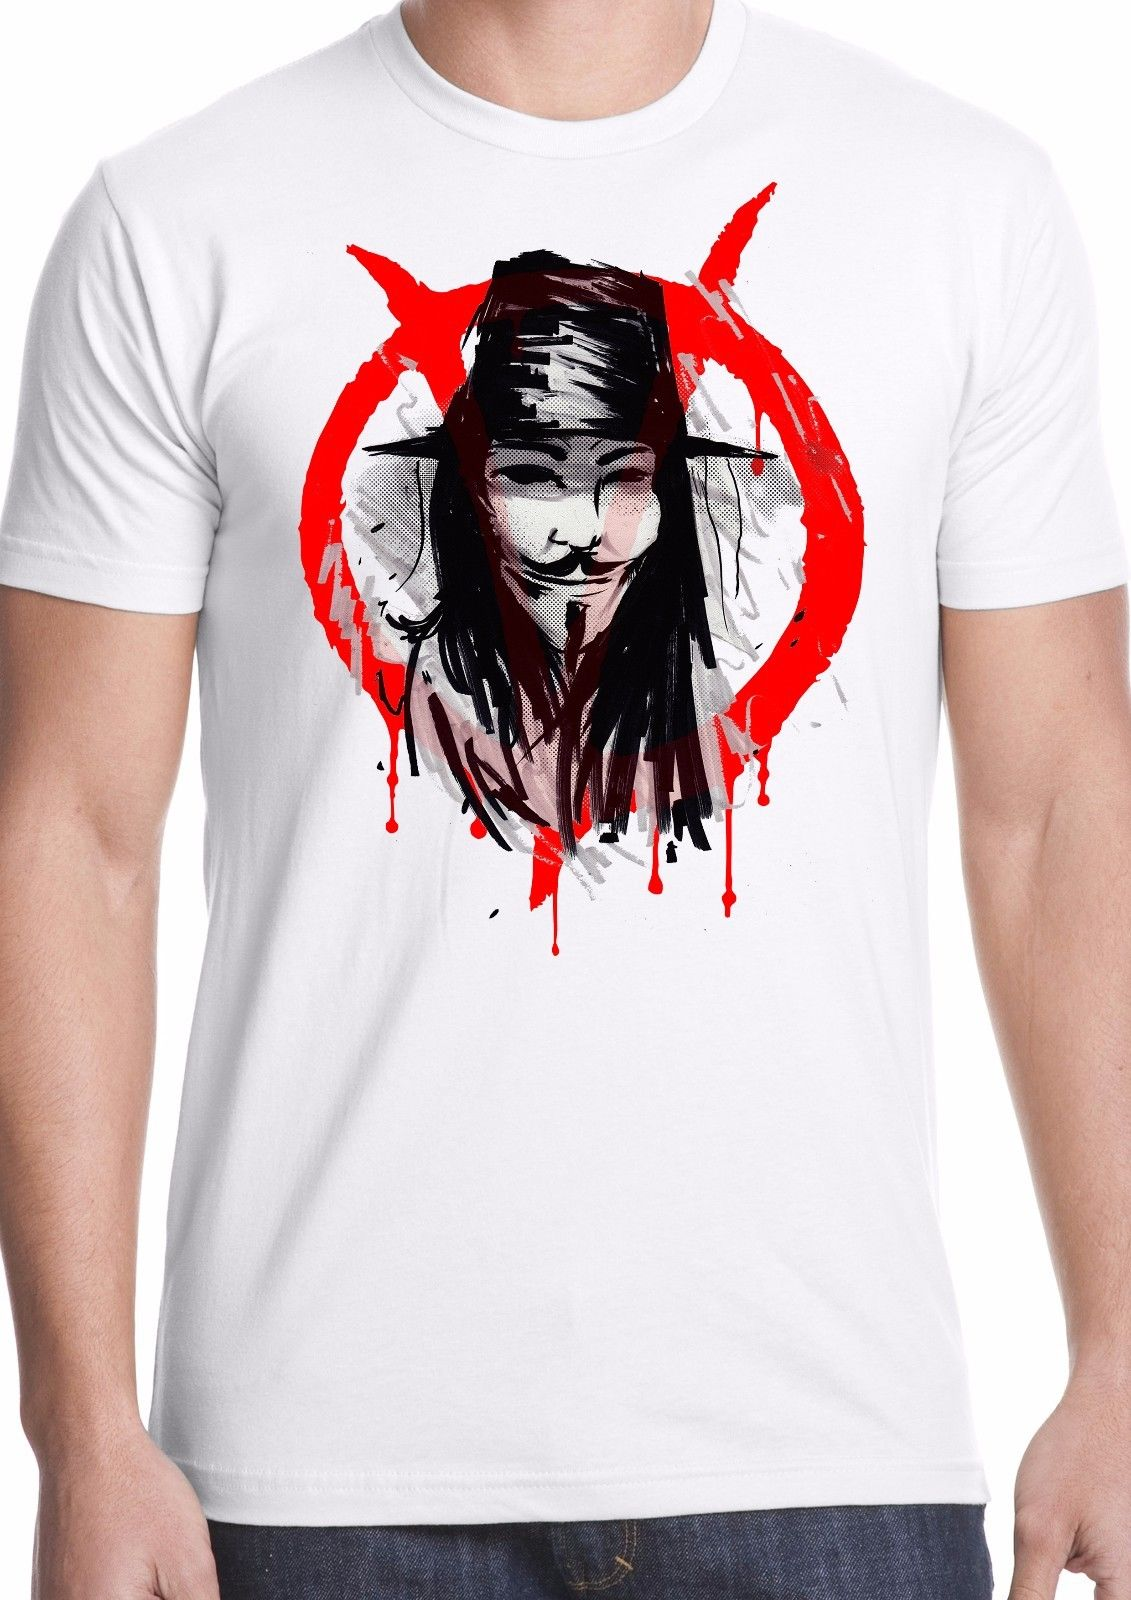 v for vendetta t shirt film cult freedom political guy fawkes Anonymous activist Cool Casual pride t shirt men Unisex New